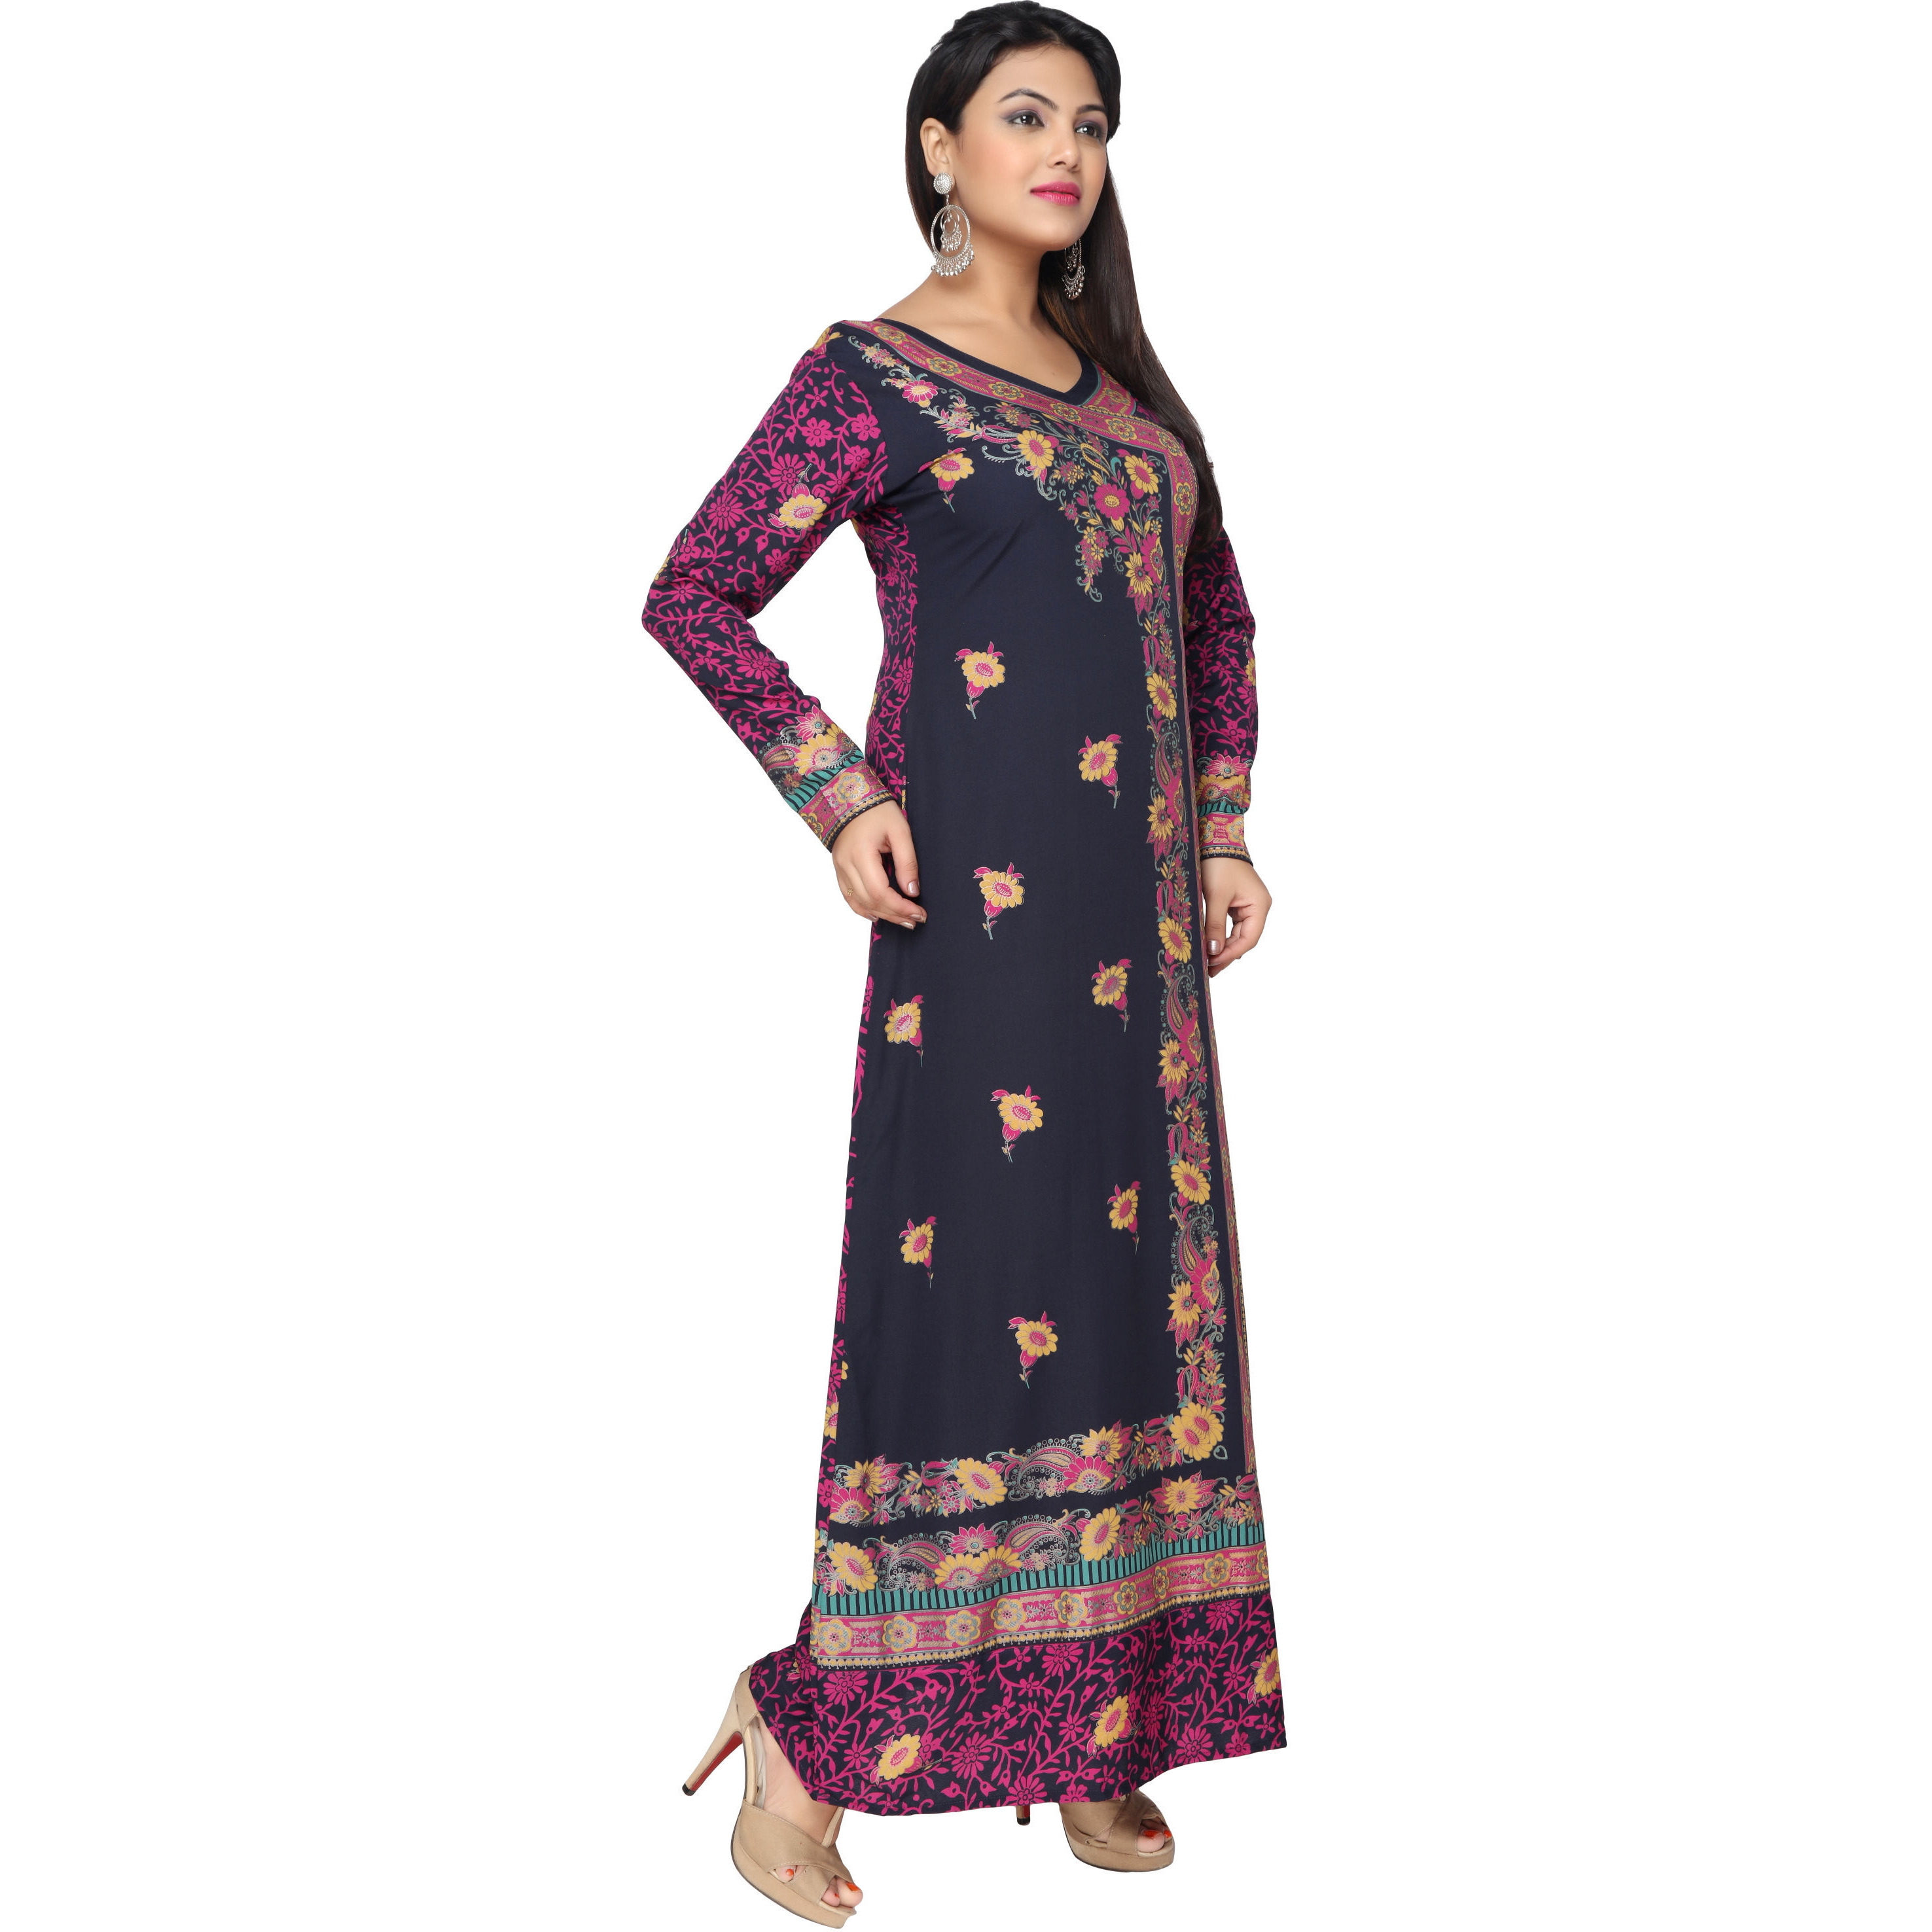 TrendyFashionMall BlueMulti Gold Print Kaftan Abaya Maxi Dress KFT01042 S-38 (Size:44 - X-LARGE, Color:TFMKFT01042-BLUEMULTI)